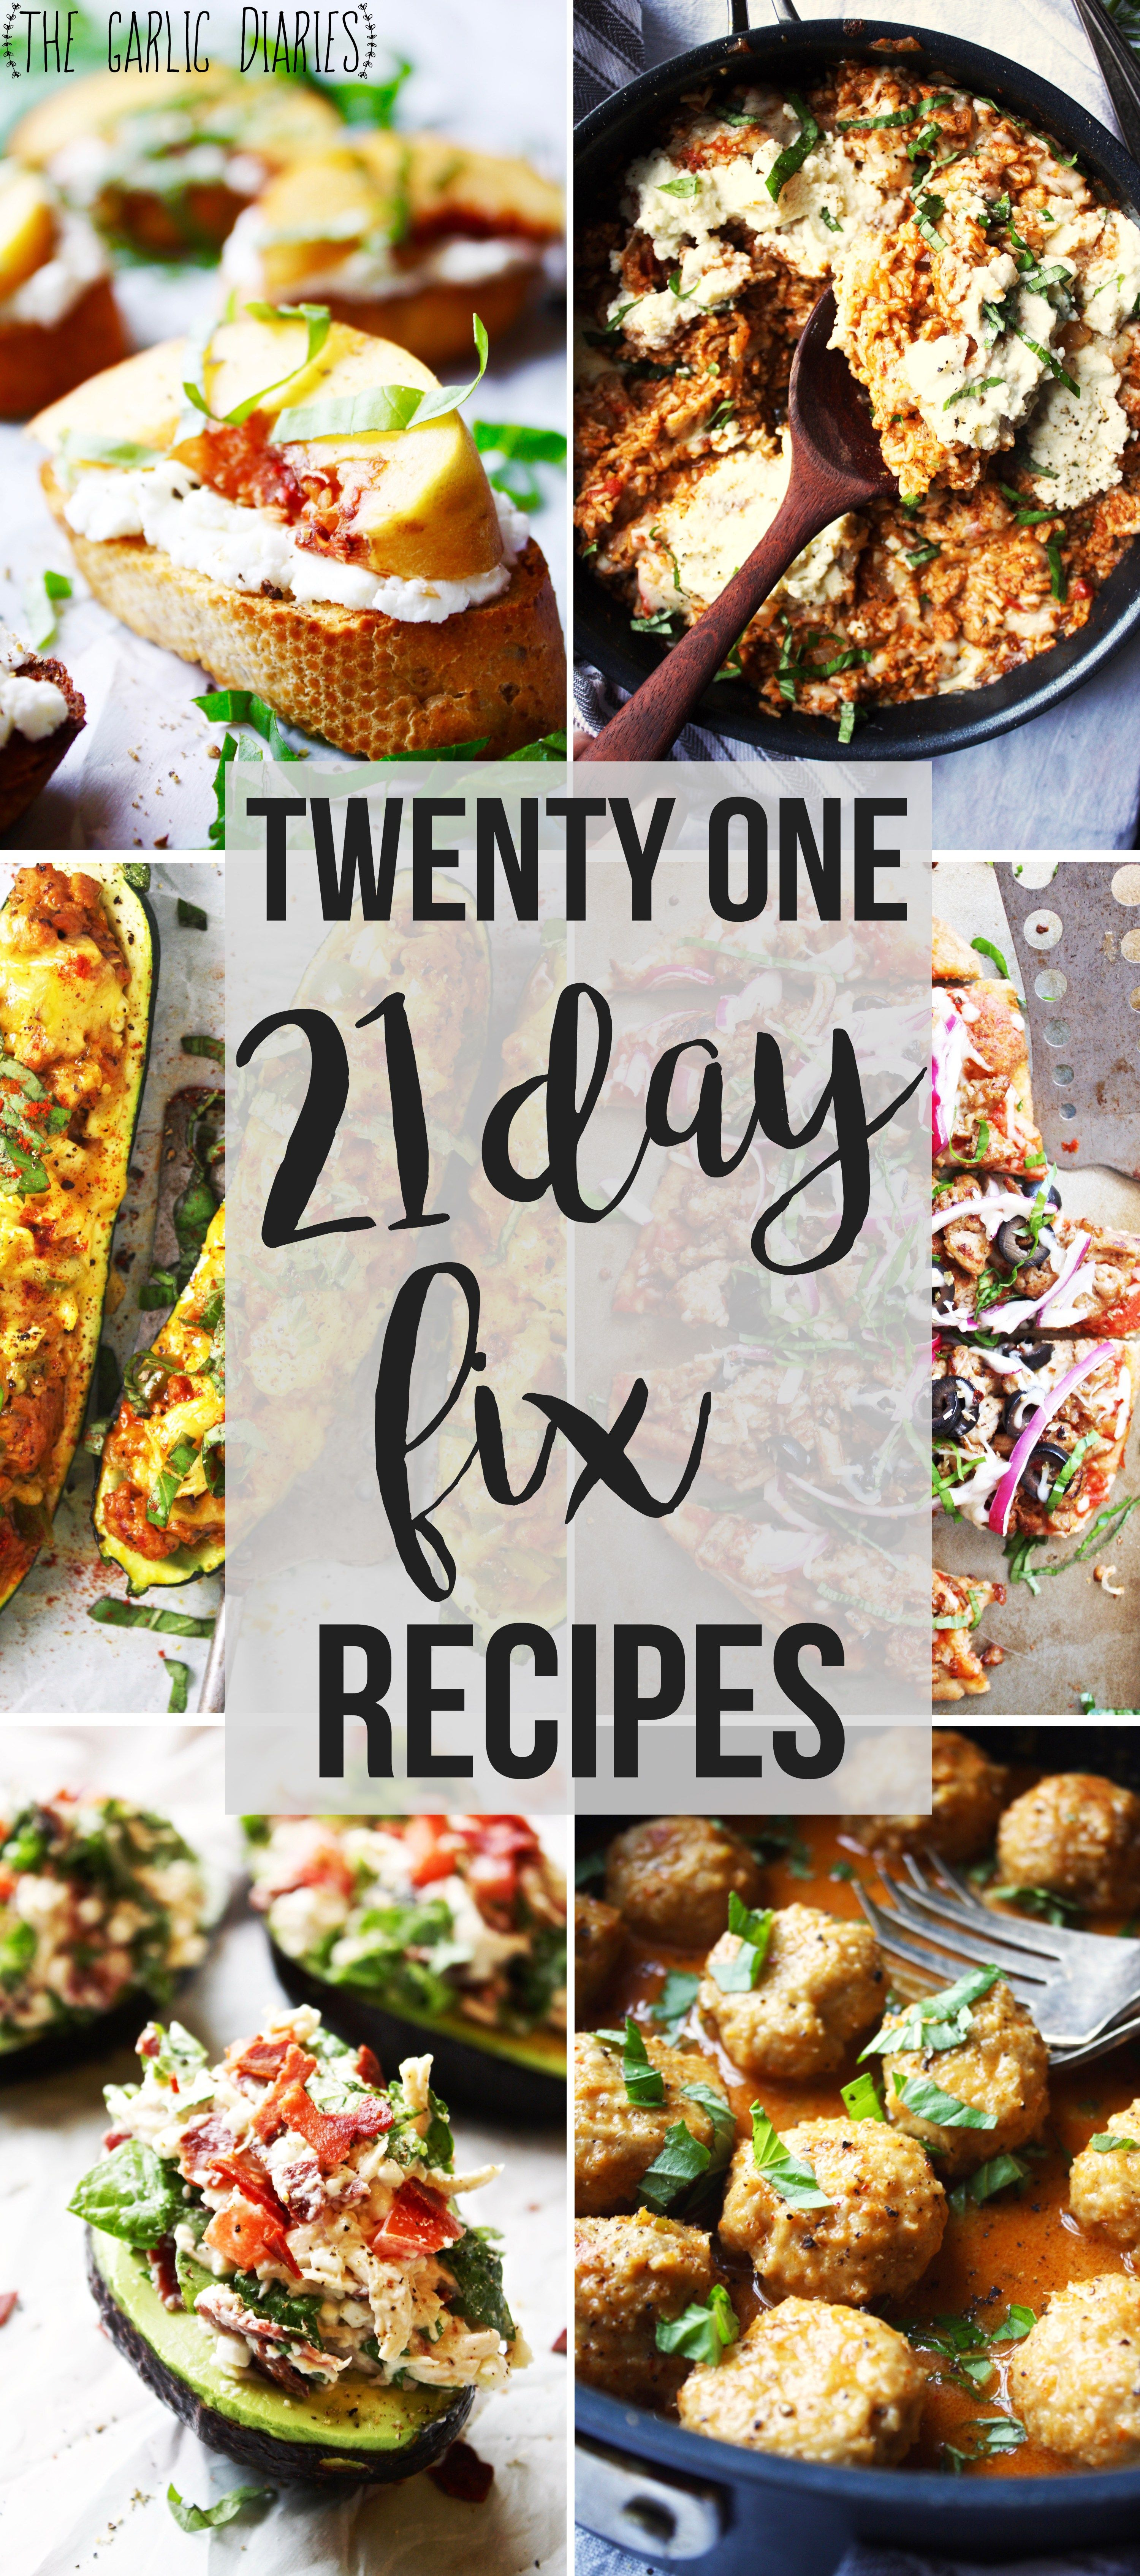 Twenty one 21 day fix recipes if you are on the 21 day fix or twenty one 21 day fix recipes if you are on the 21 day fix fixate recipesyummy recipesdiabetic forumfinder Images